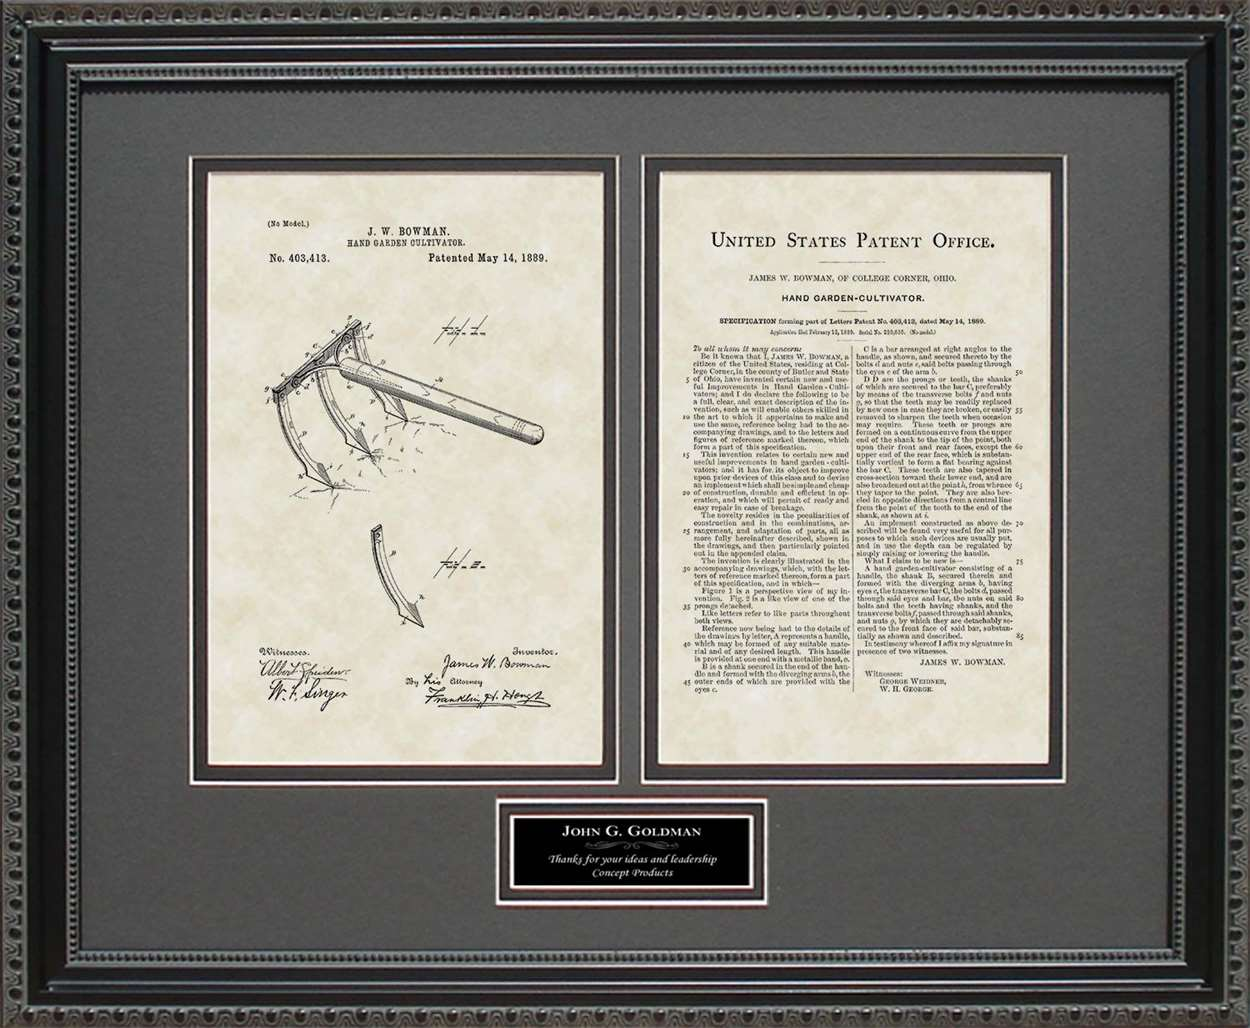 Personalized Garden Tool Patent, Art & Copy, Bowman, 1889